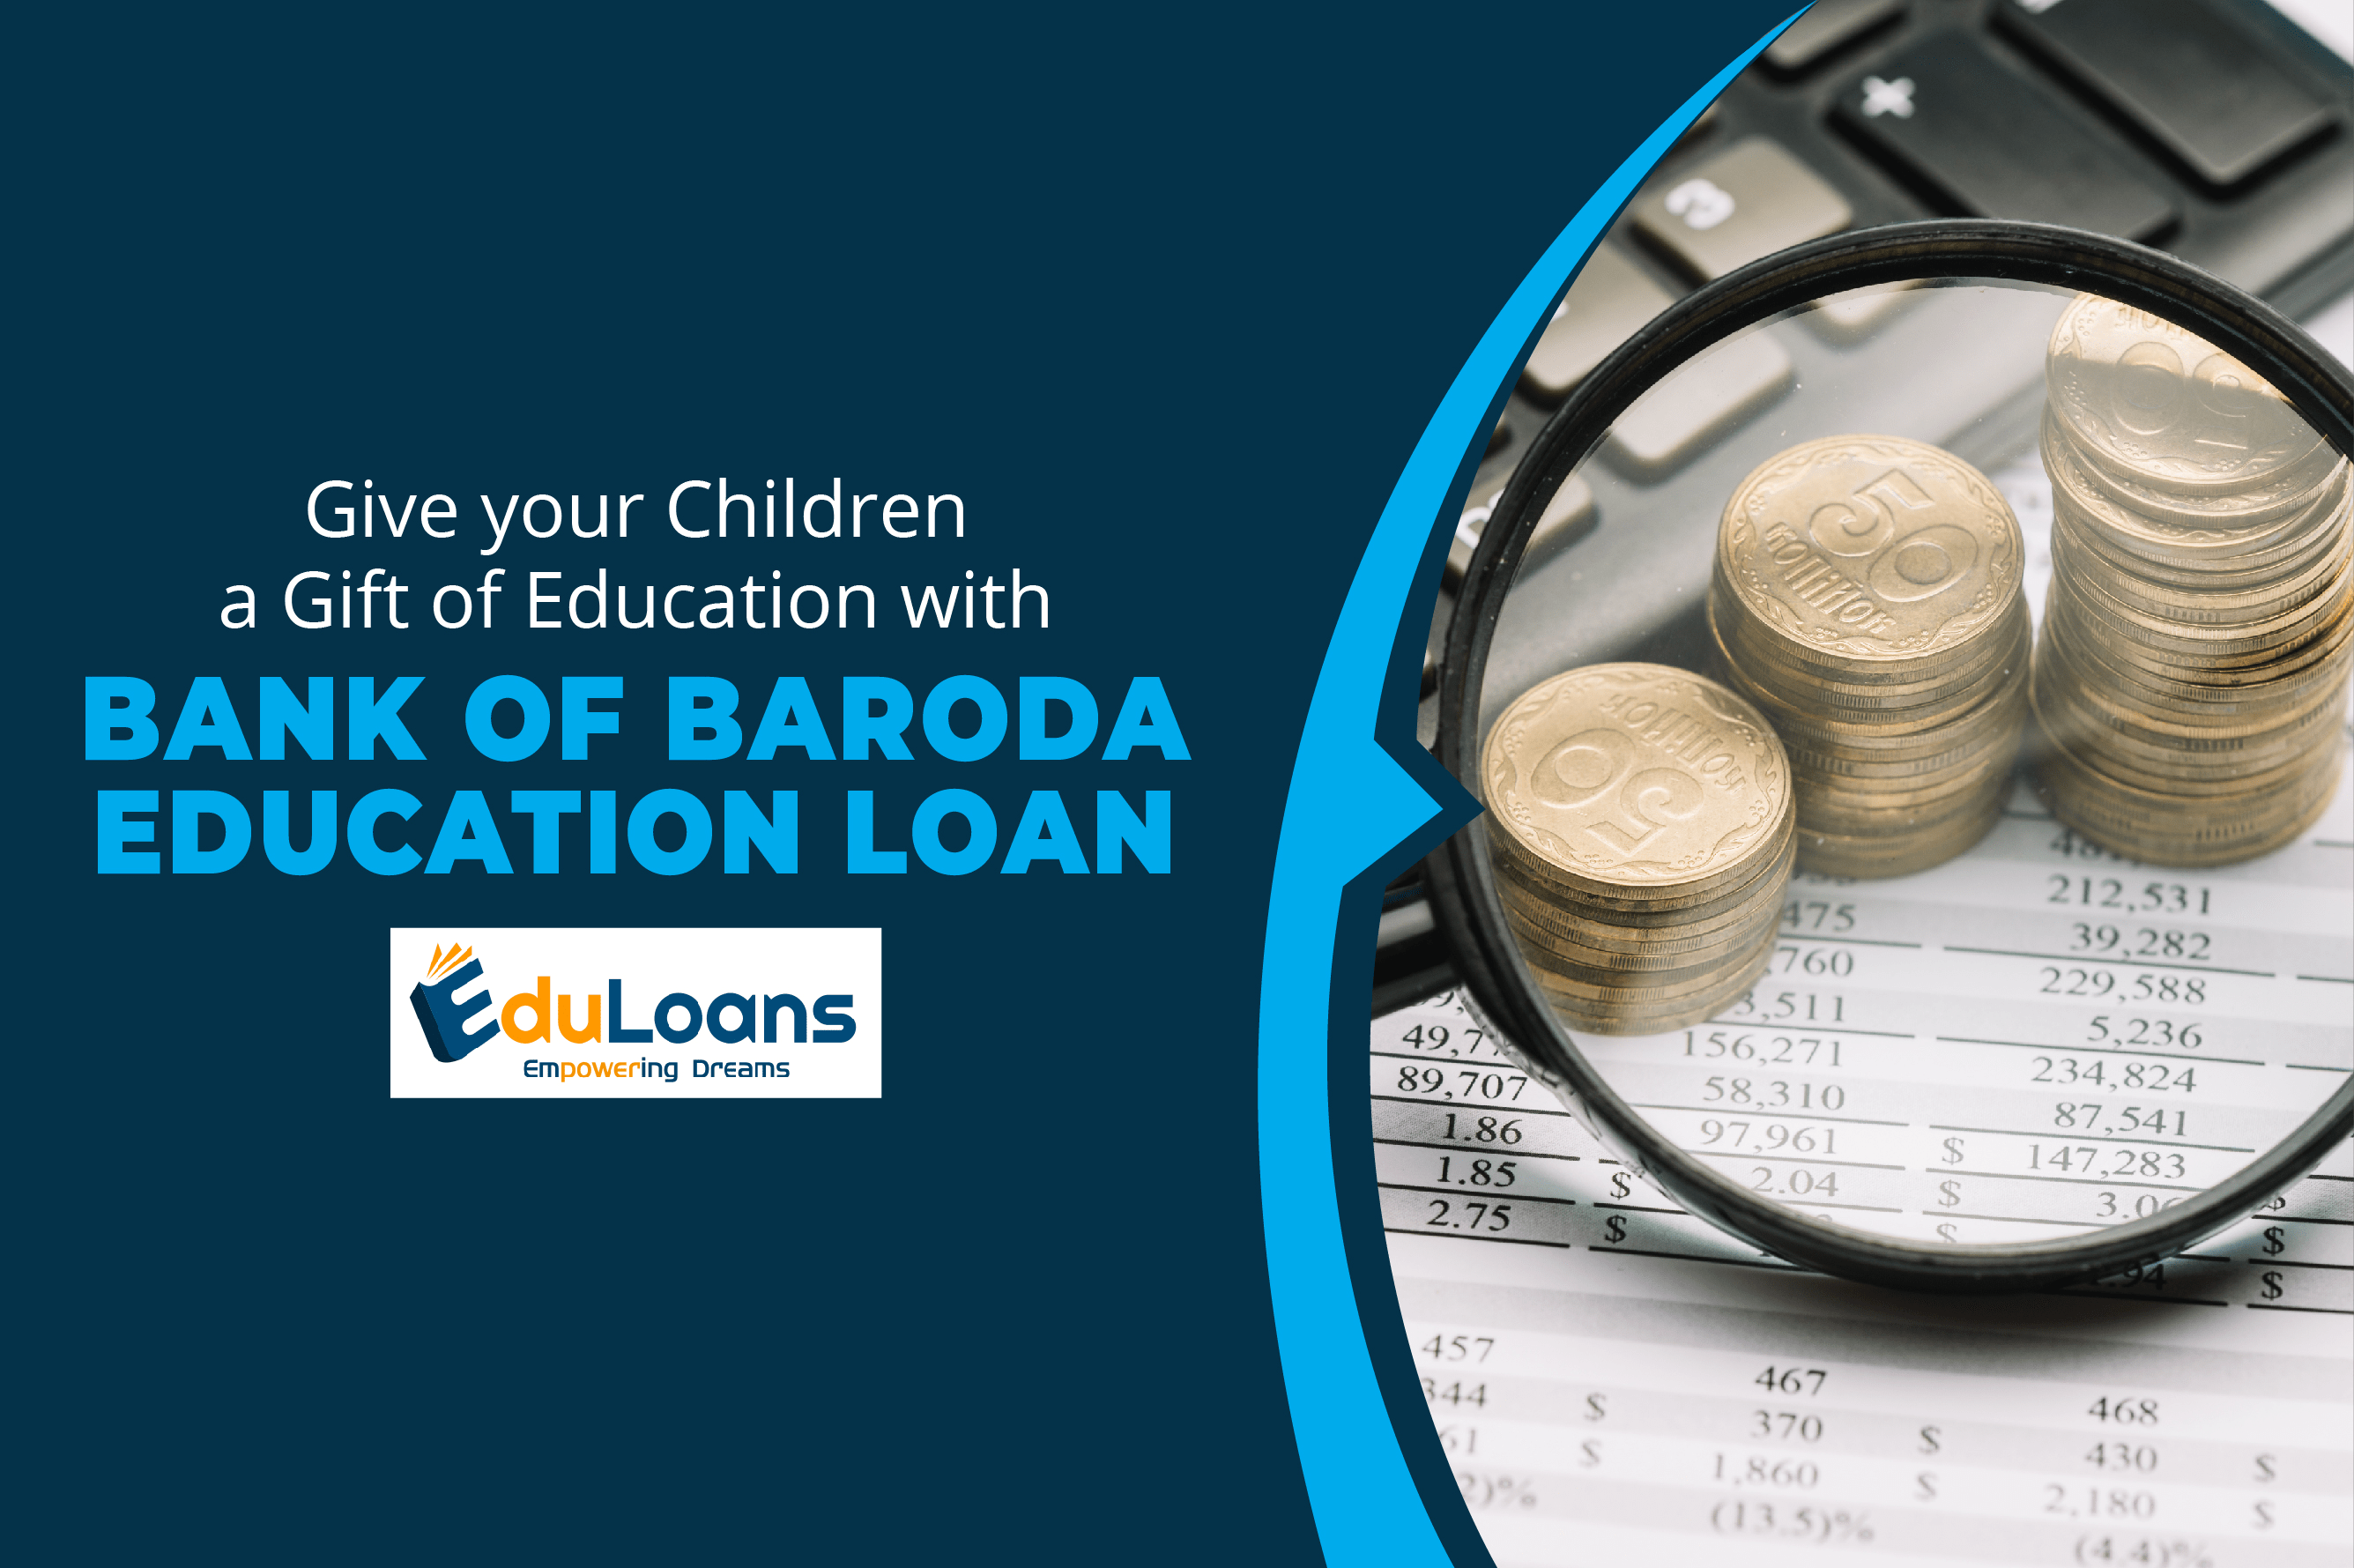 Give your Children a Gift of Education with Bank of Baroda Education Loan